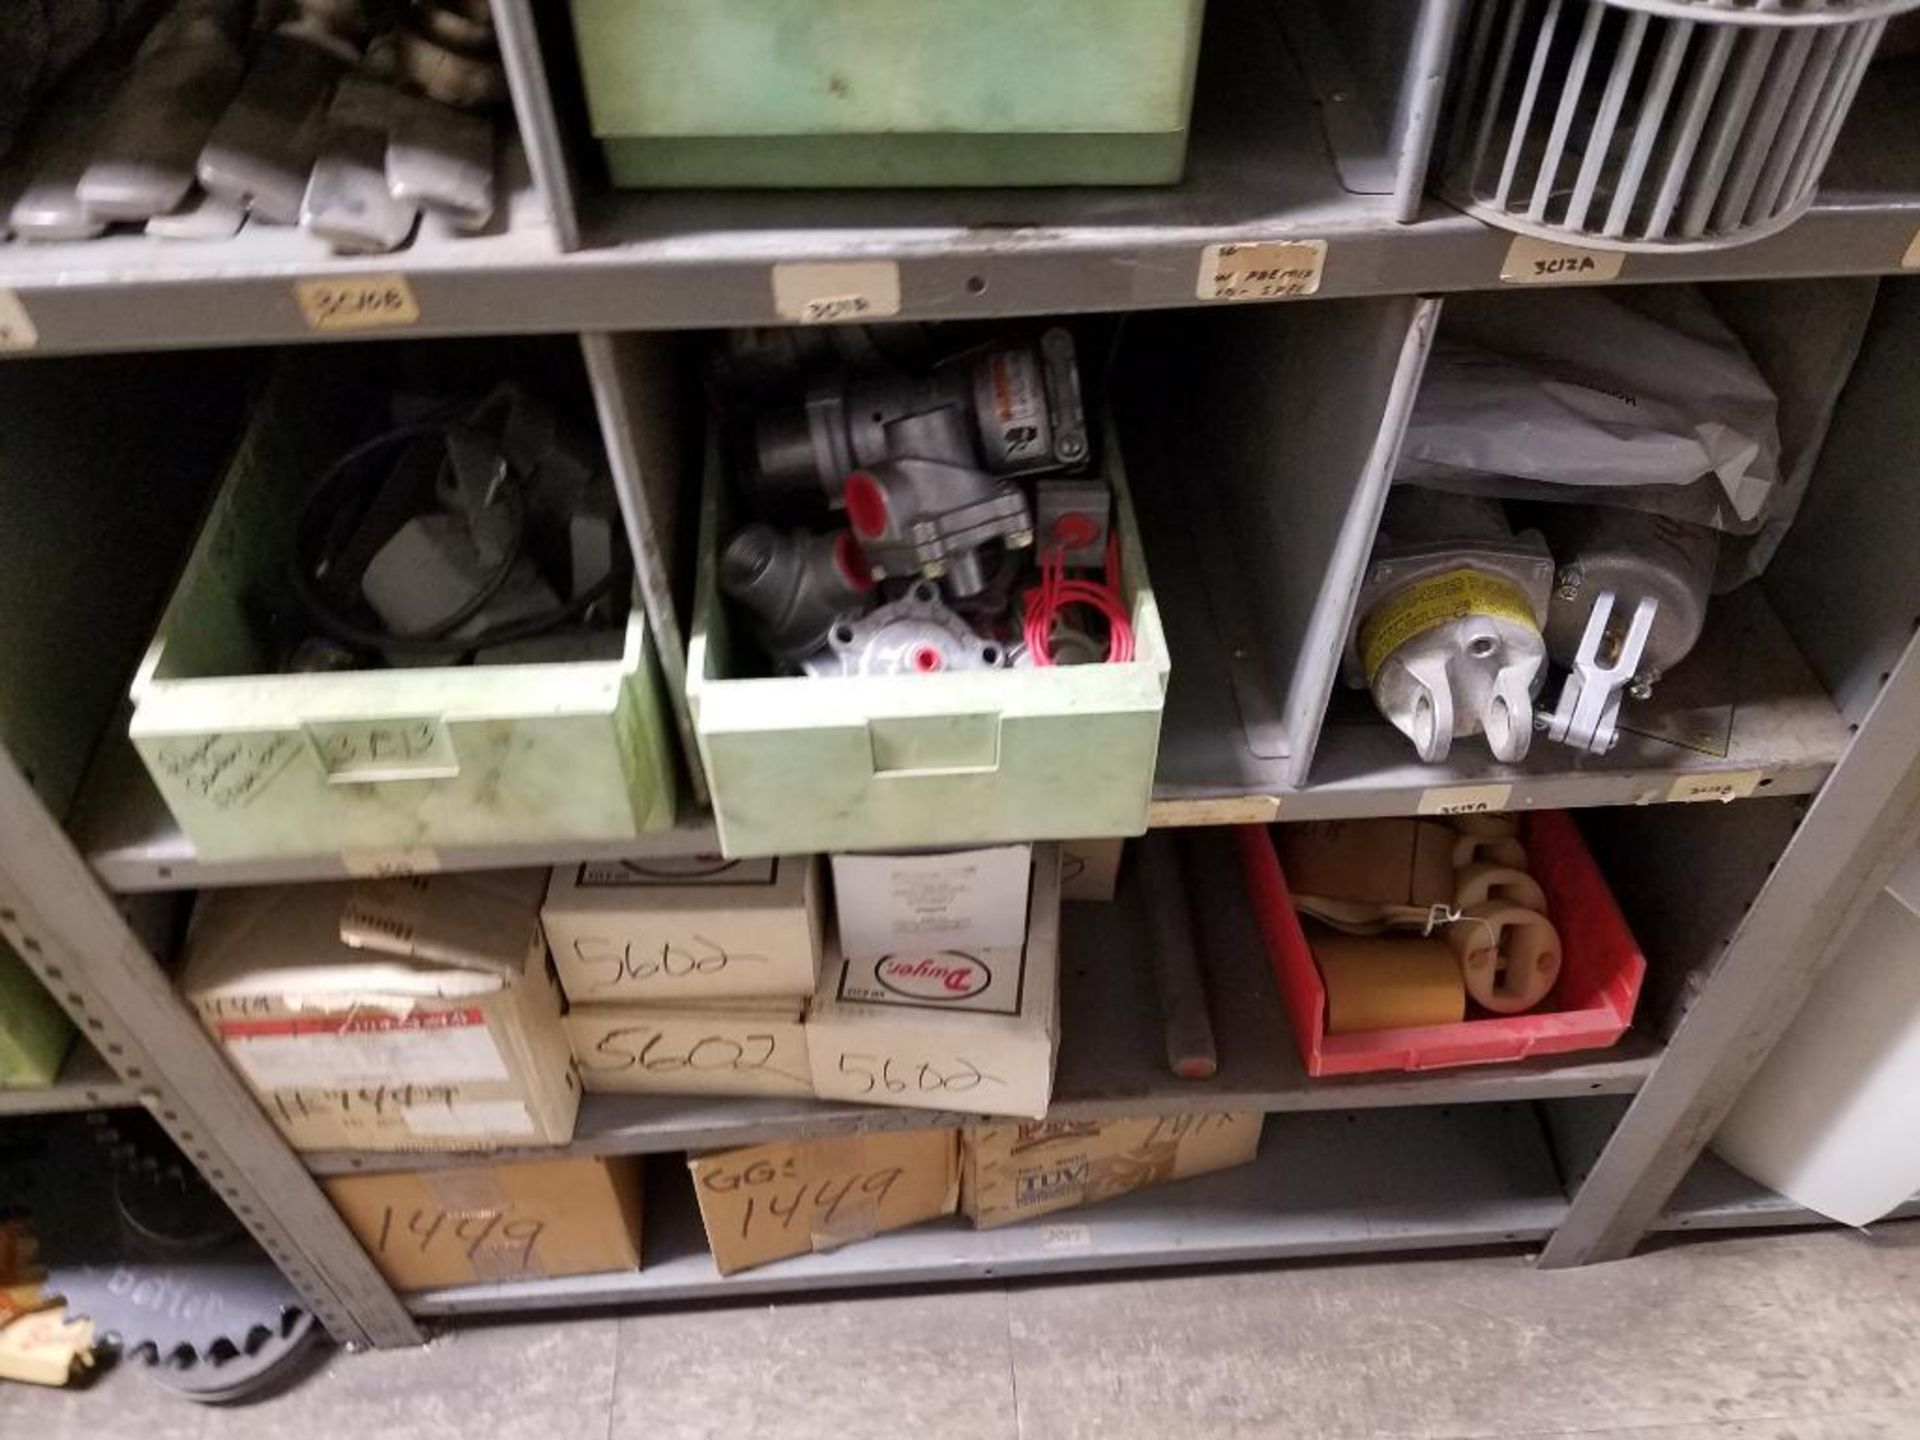 various replacement parts, conveyor belts, electrical components, gears and gauges - Image 17 of 21